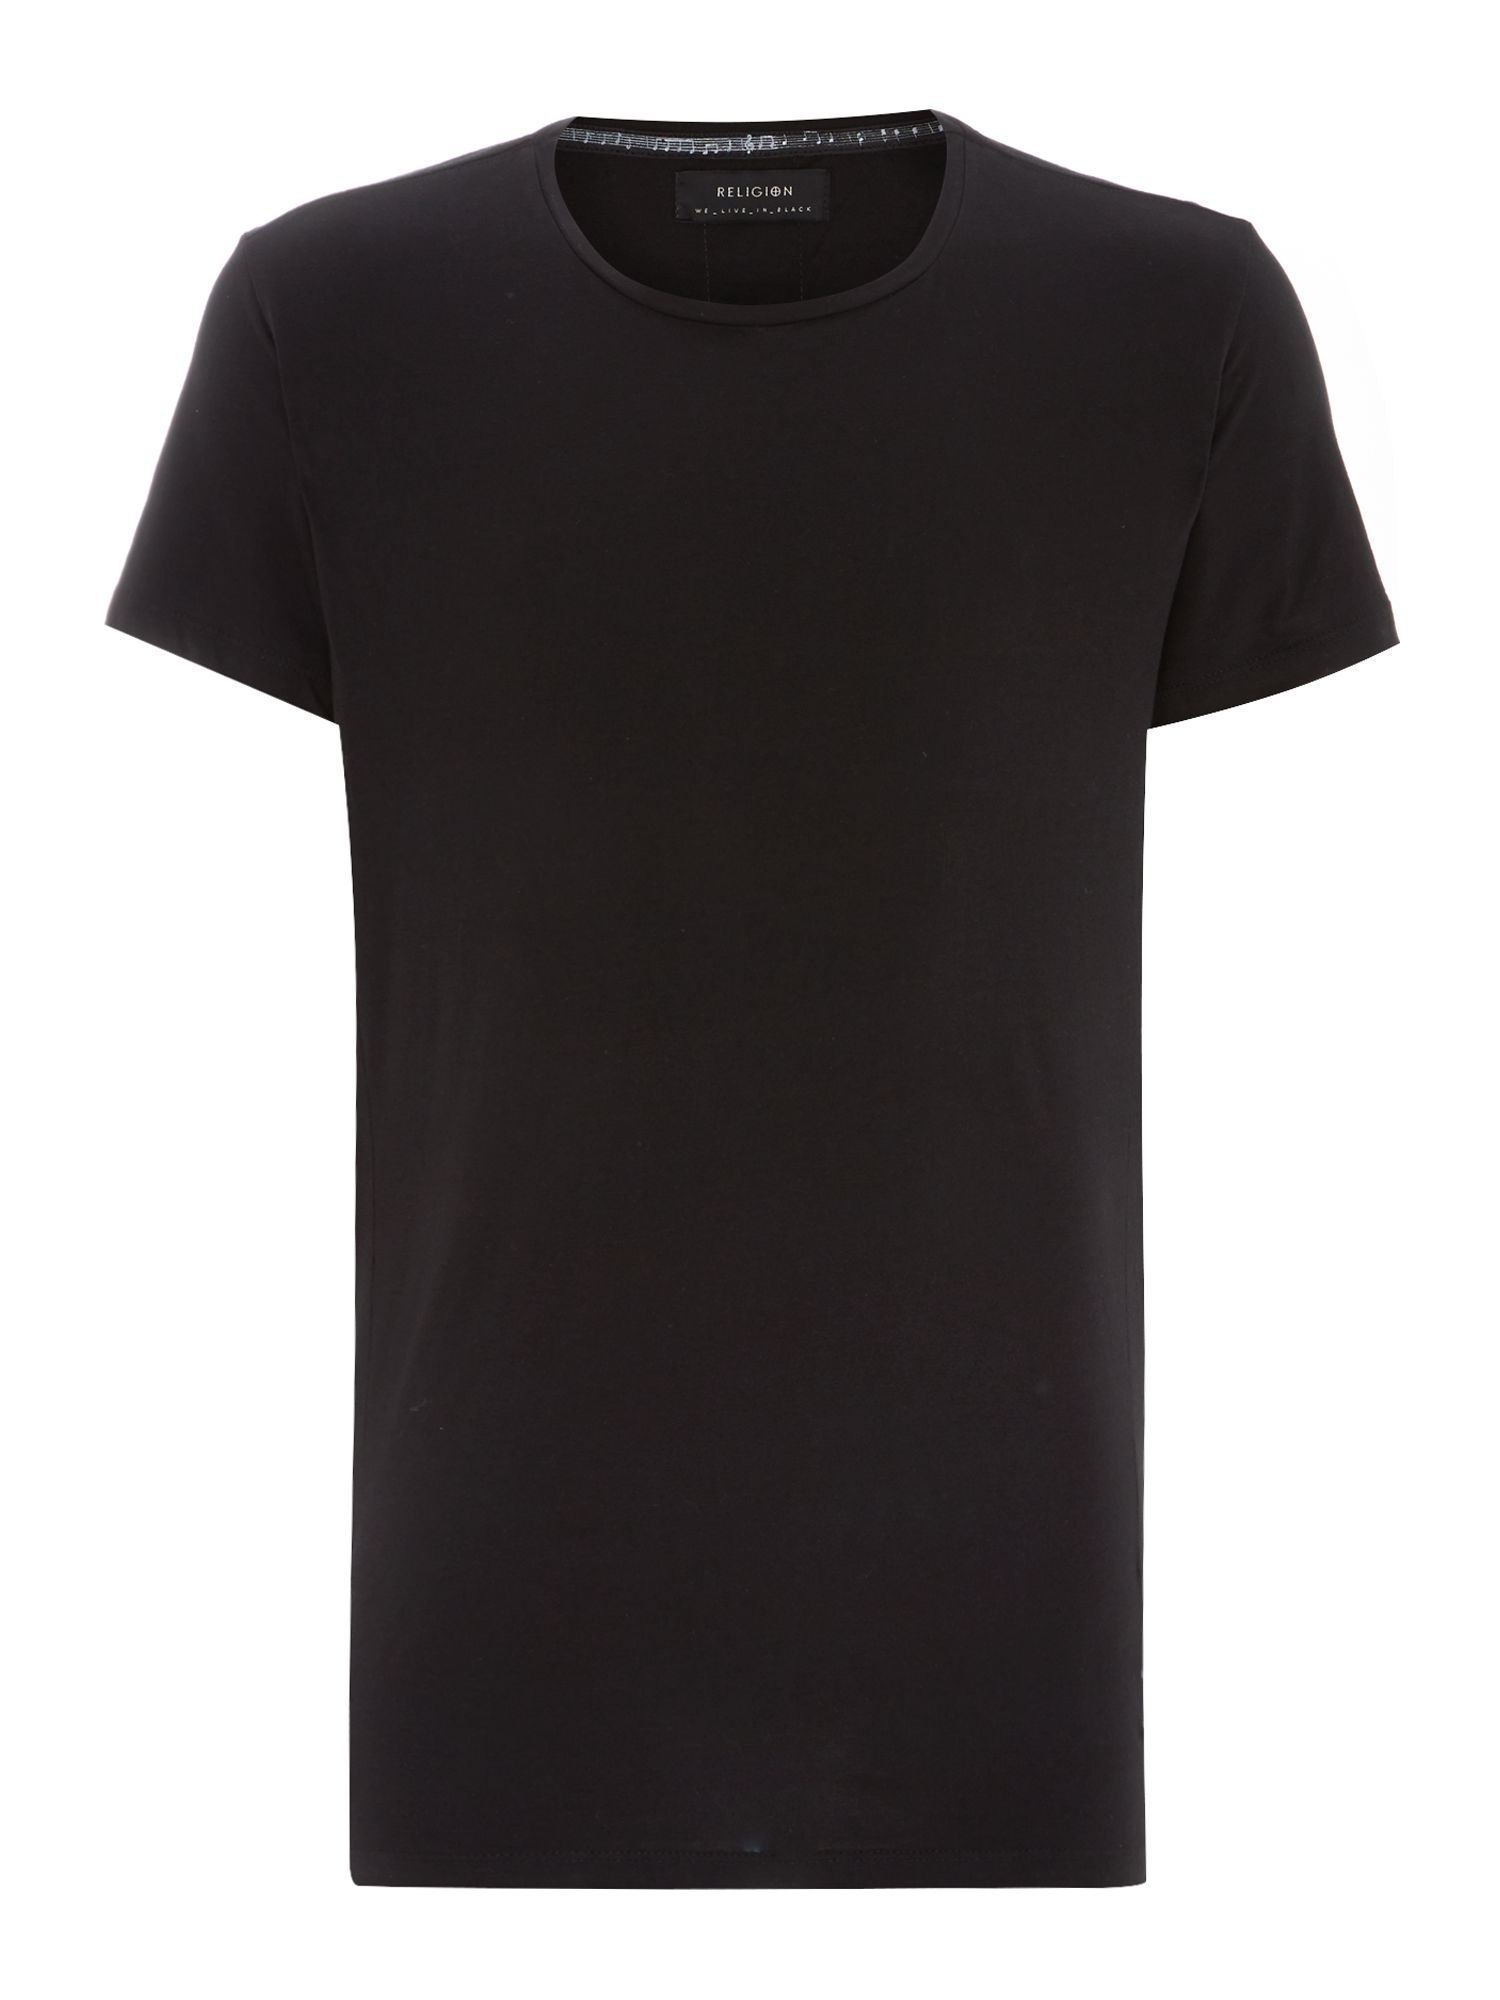 Leather trim sleeve crew neck t shirt